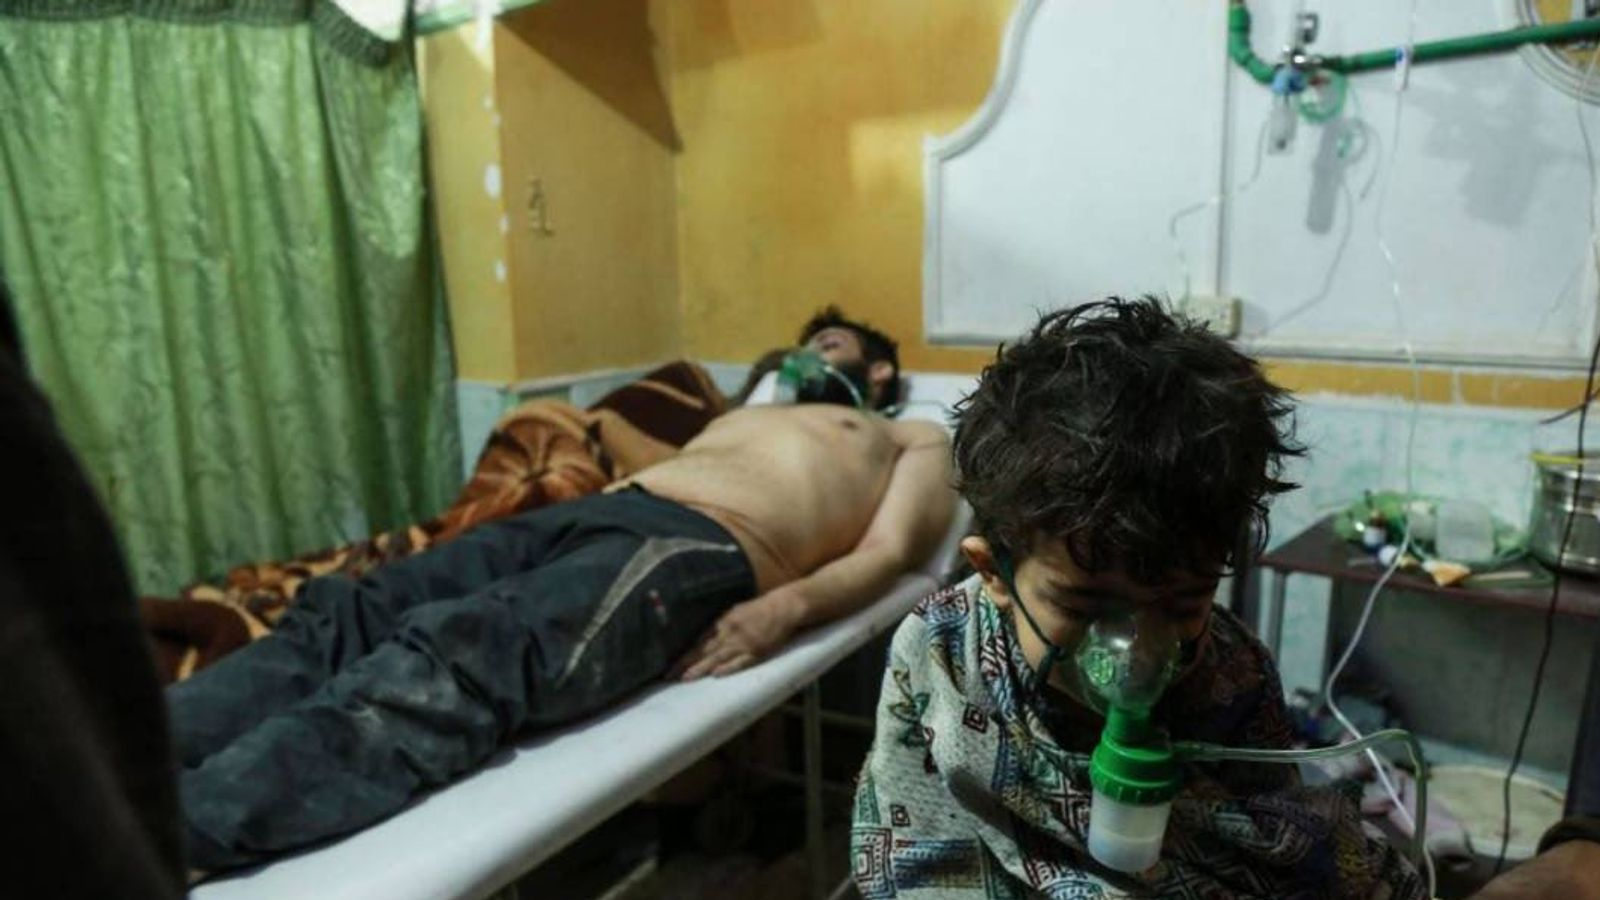 Syria Regime 39 In Deadly Chlorine Gas Attack On Civilians 39